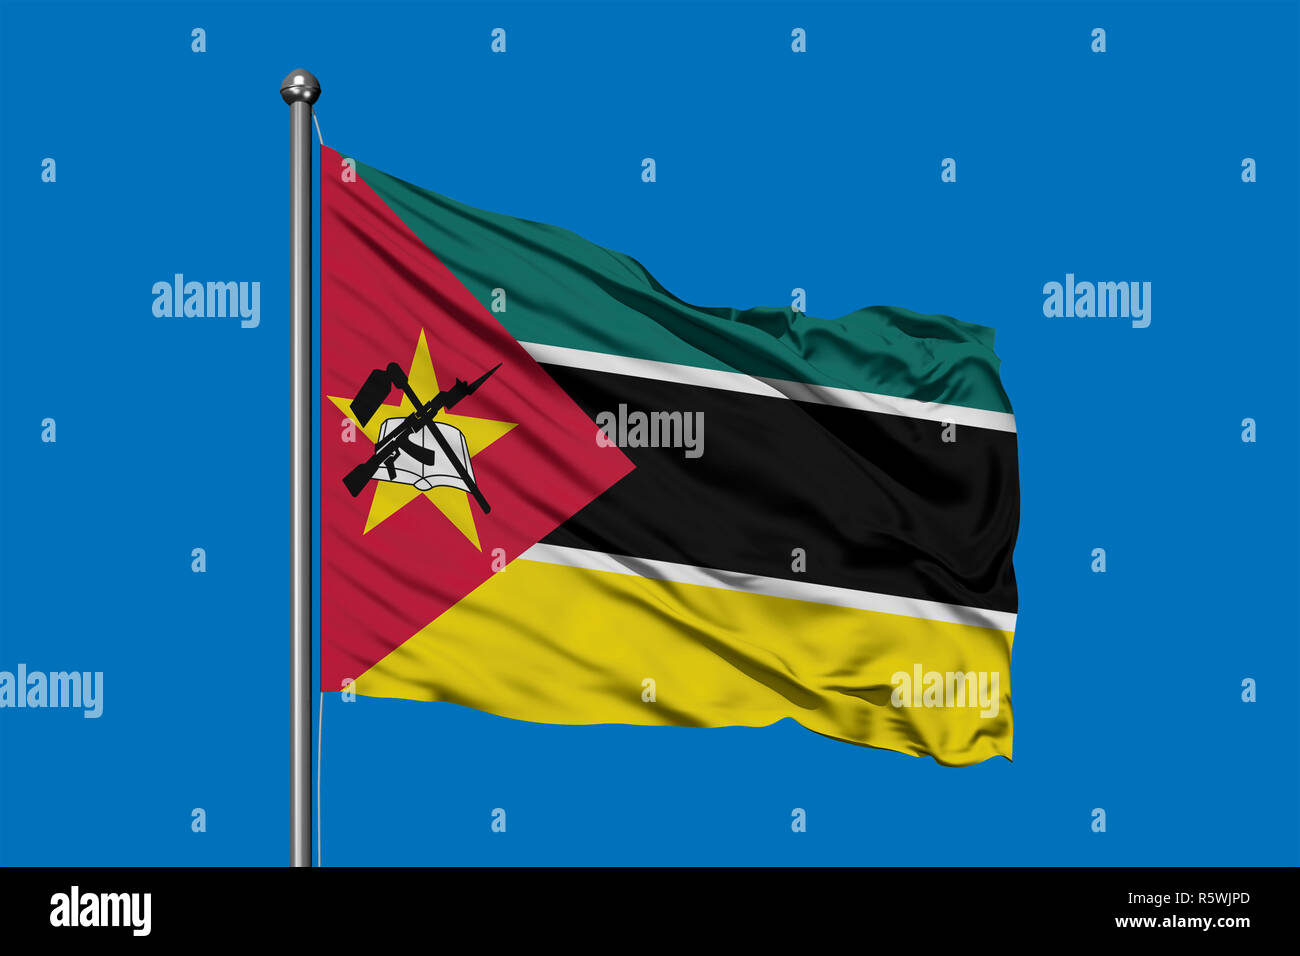 Flag of Mozambique waving in the wind against deep blue sky